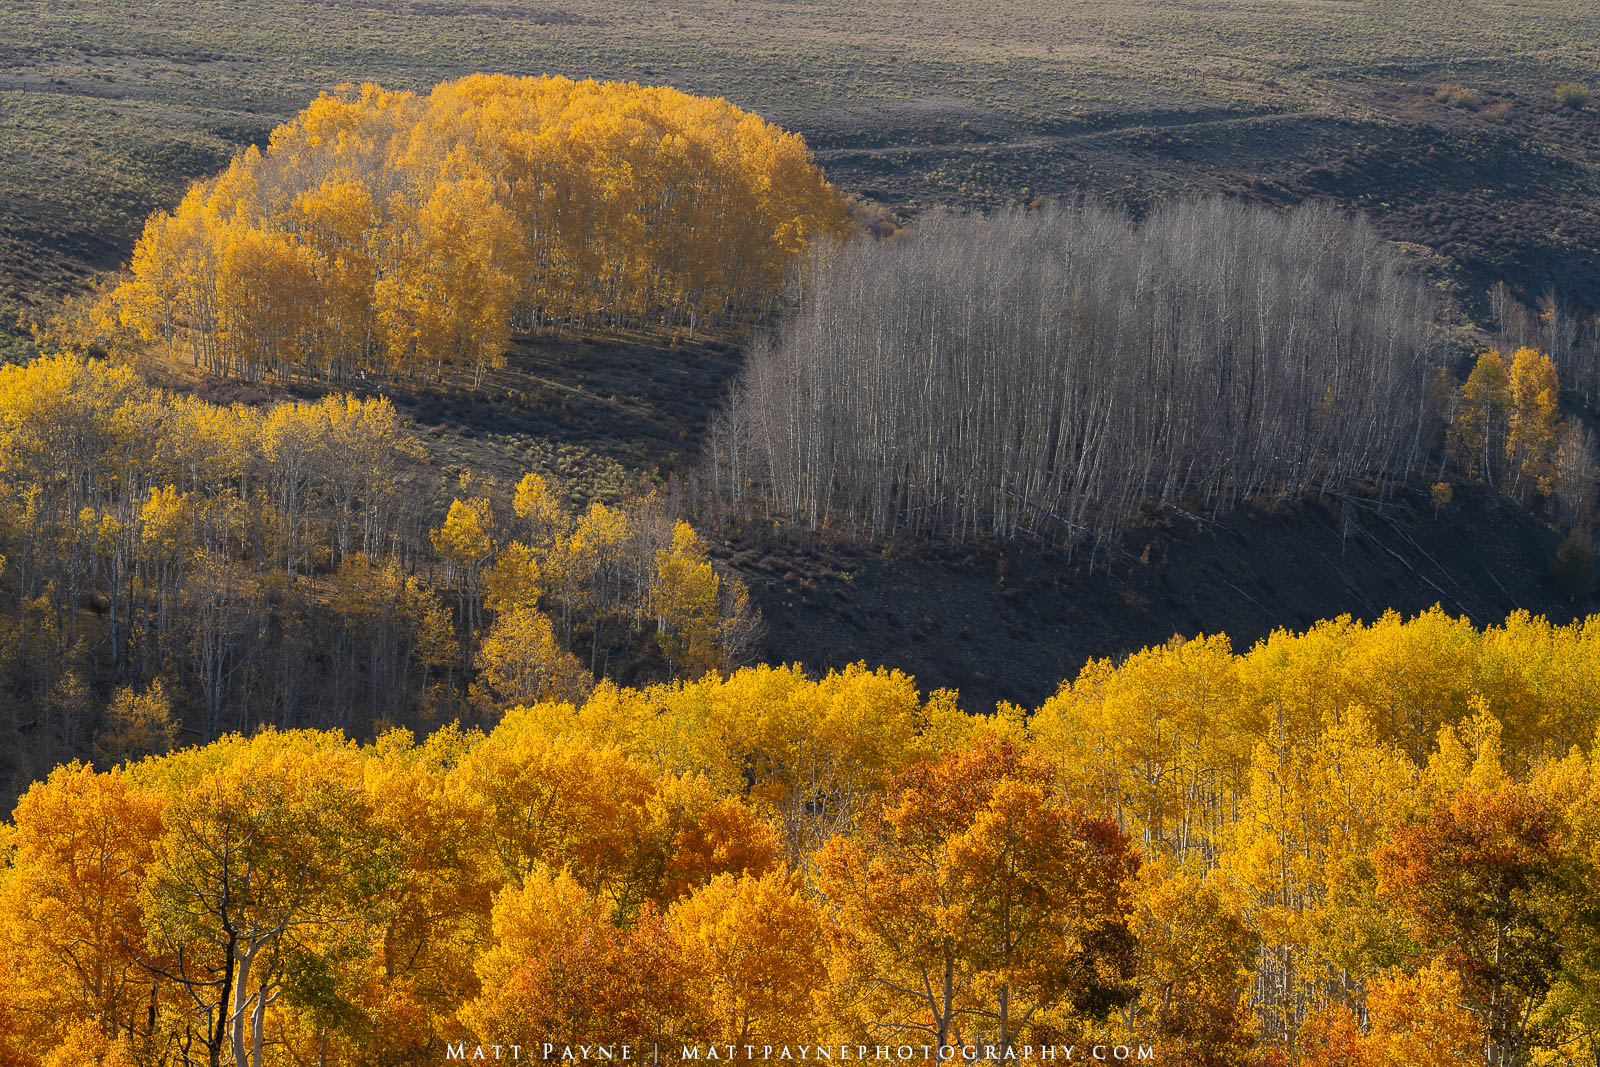 Here is another scene that piqued my curiosity. Why would there be two stands of aspen trees, one filled with leaves, and another...